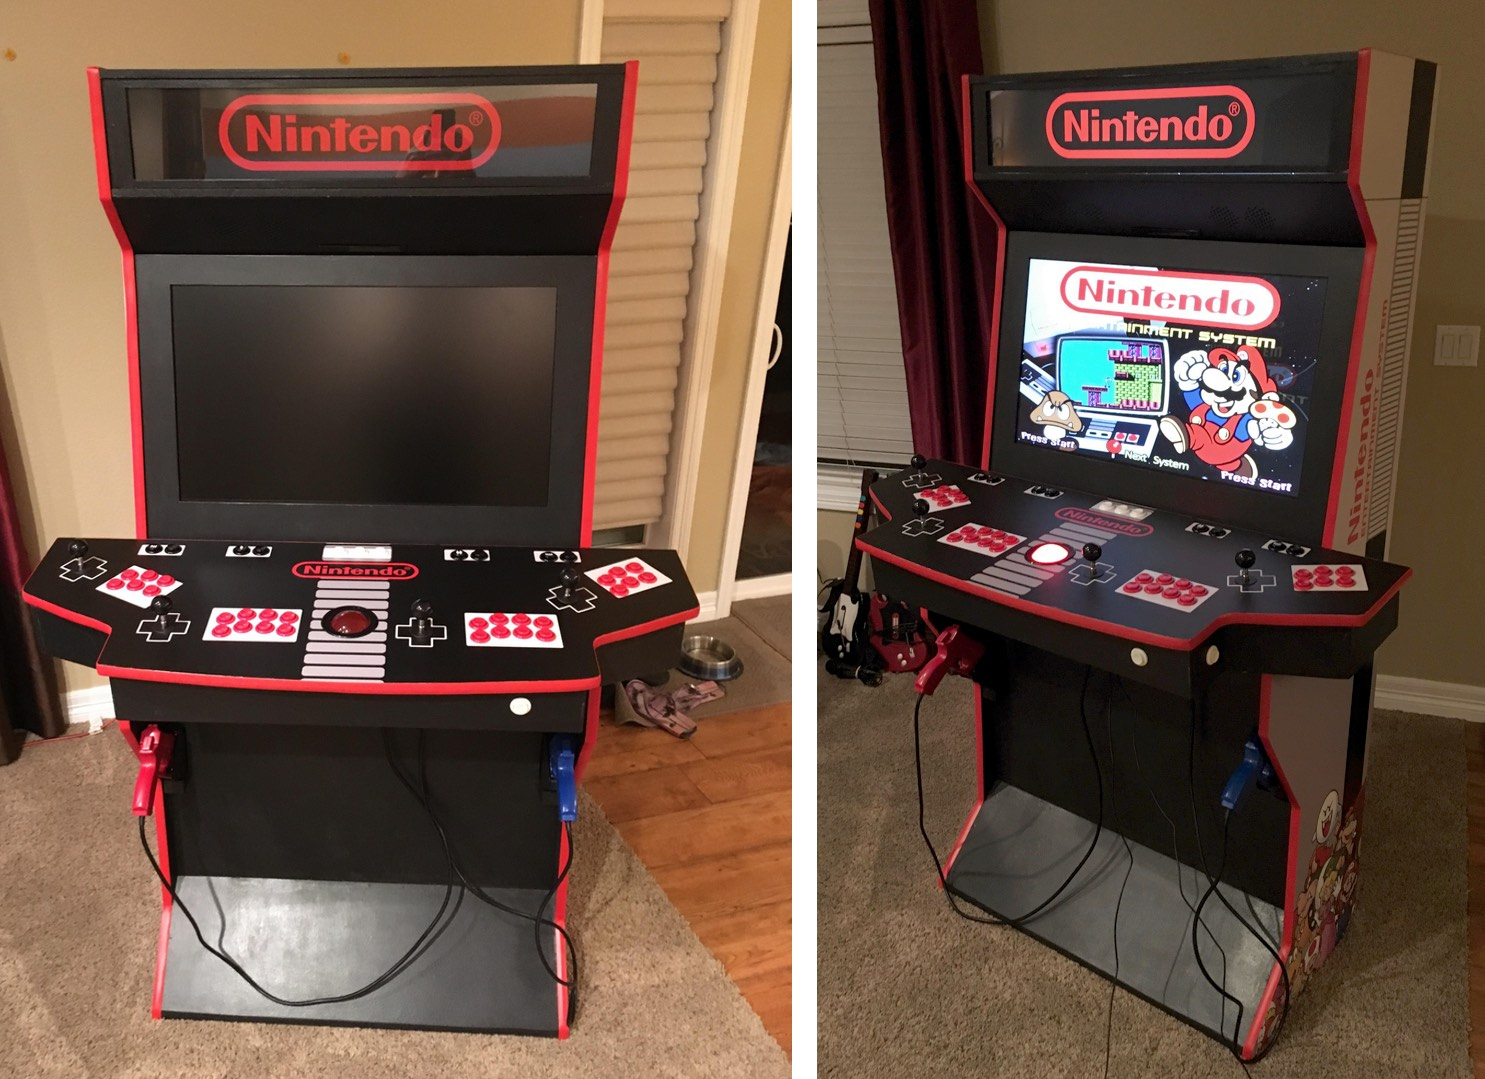 This guy re-made a classic Nintendo home arcade video game